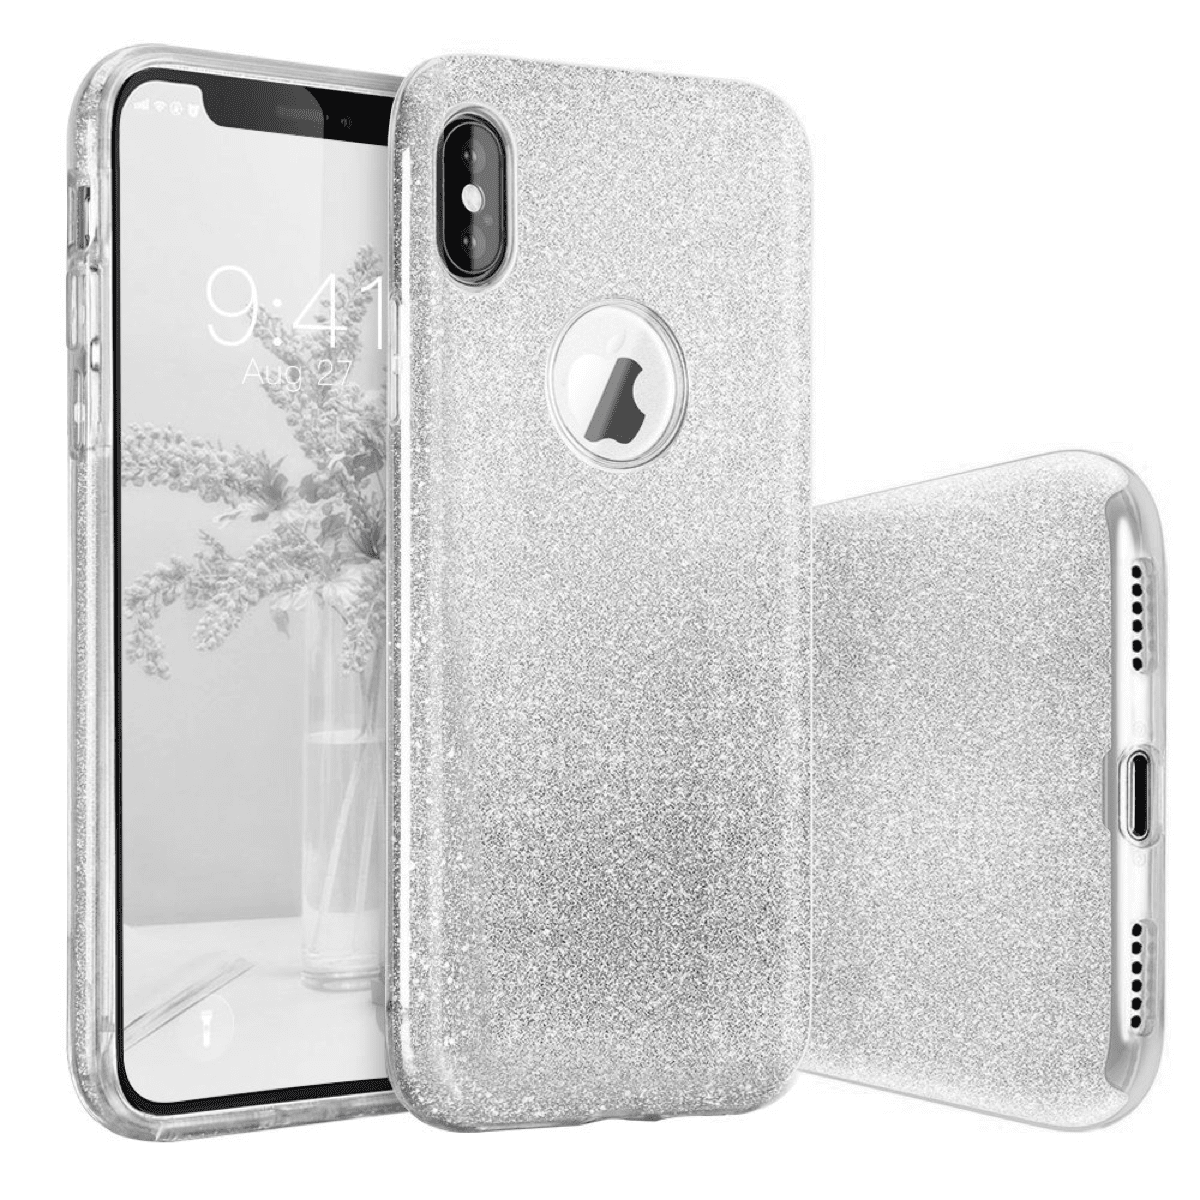 59b5d79cedd9 5 iPhone X Bling Cases to Glam Up Your Device - The Mac Observer